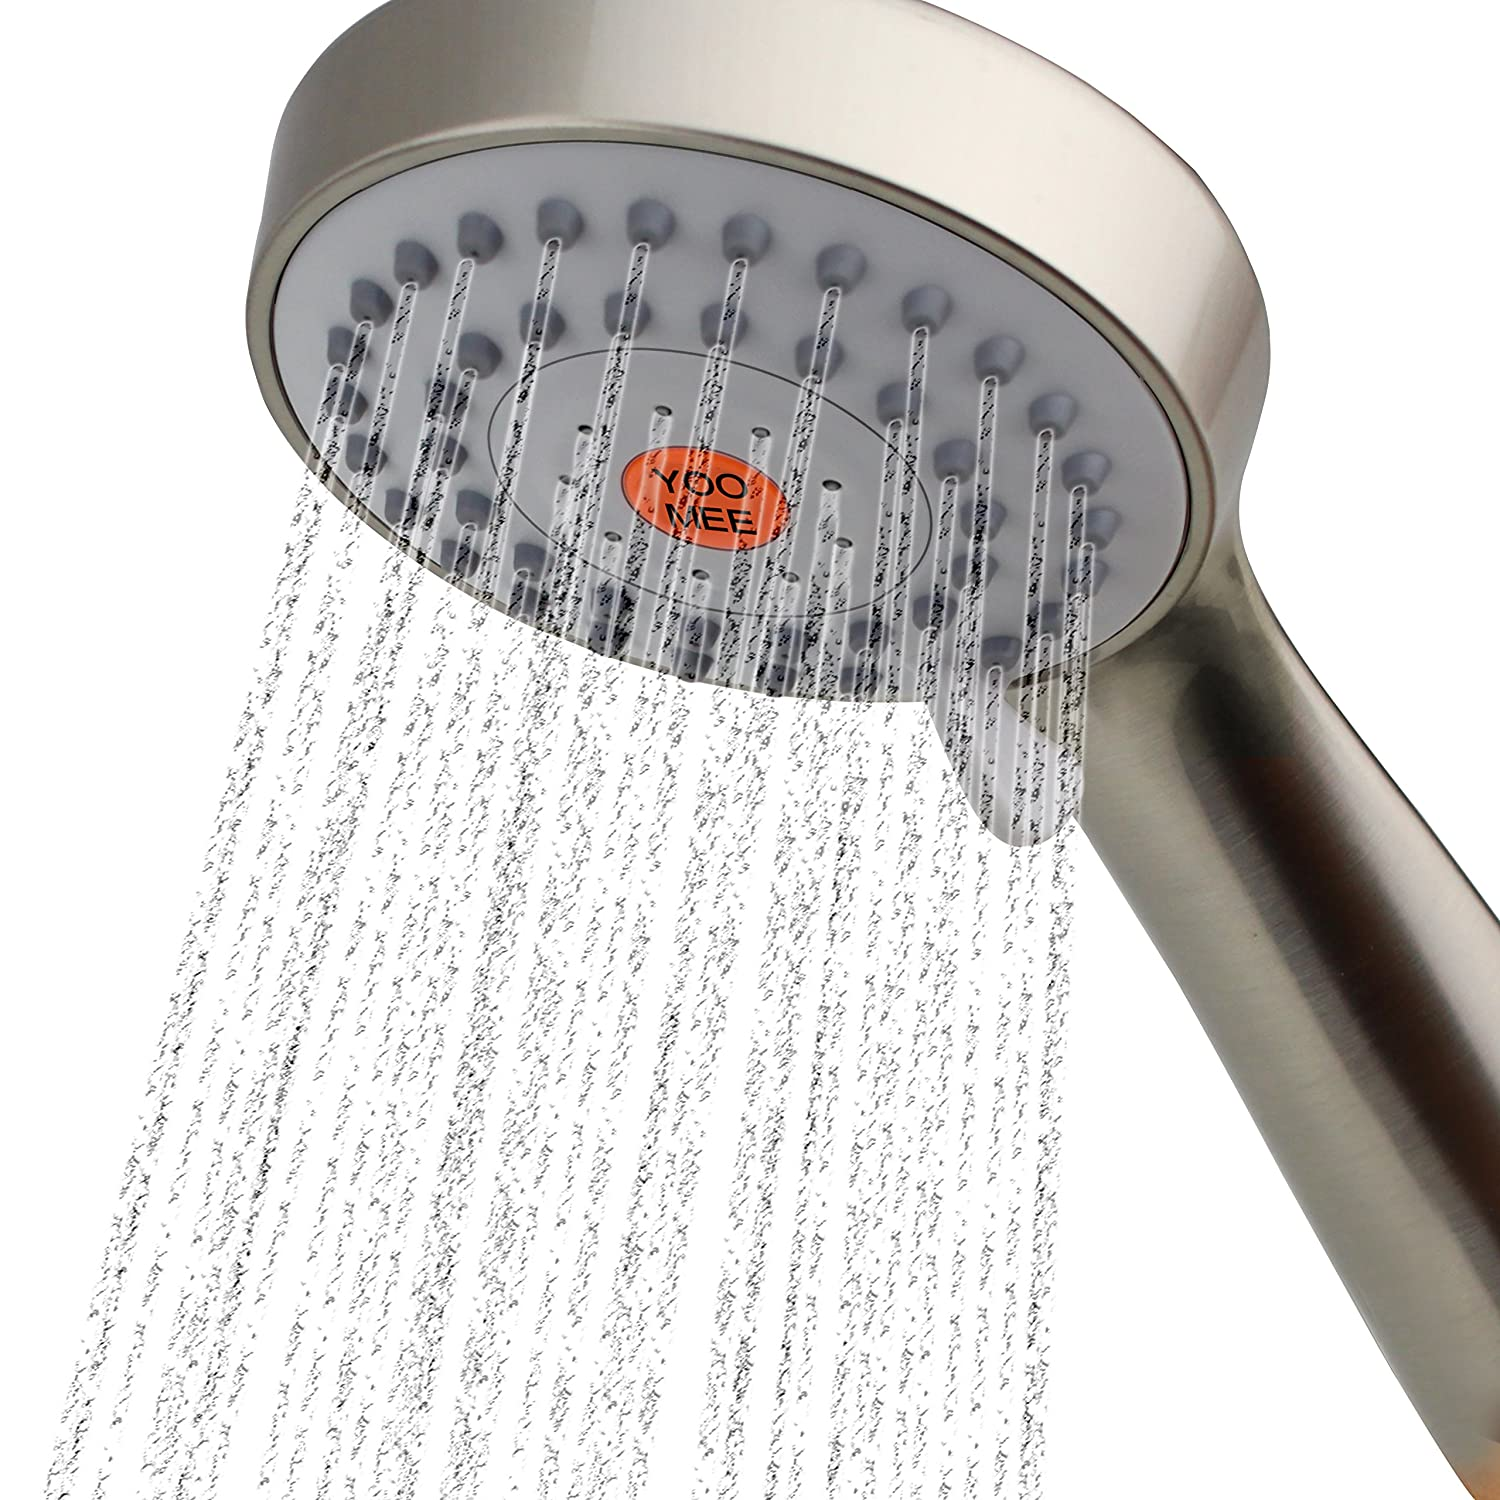 YOO.MEE High Pressure Handheld Shower Head with Powerful Shower Spray against Low Pressure Water Supply Pipeline, Multi-functions, Bathroom Accessories w/Hose, Bracket, and Teflon Tape- Chrome SYNCHKG072018